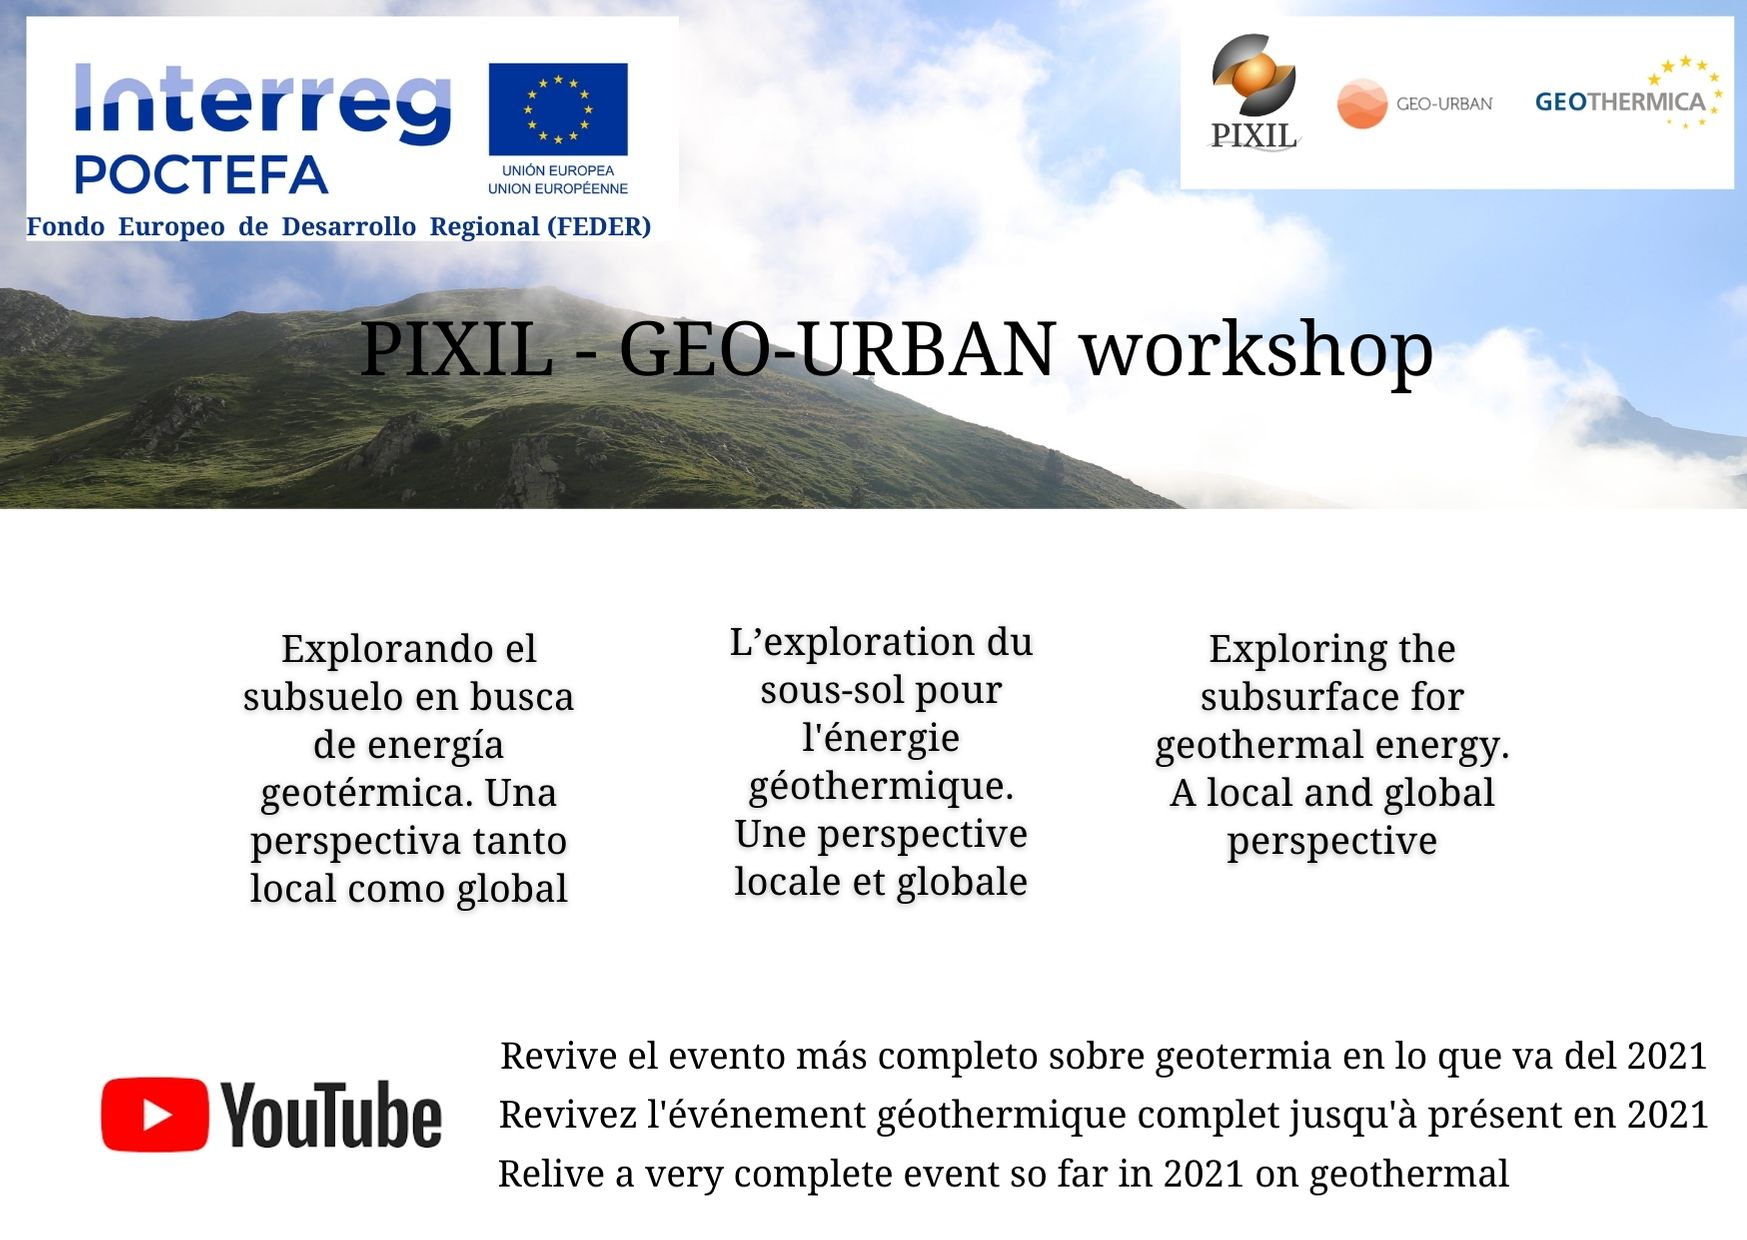 One of the great events about geothermal energy is available